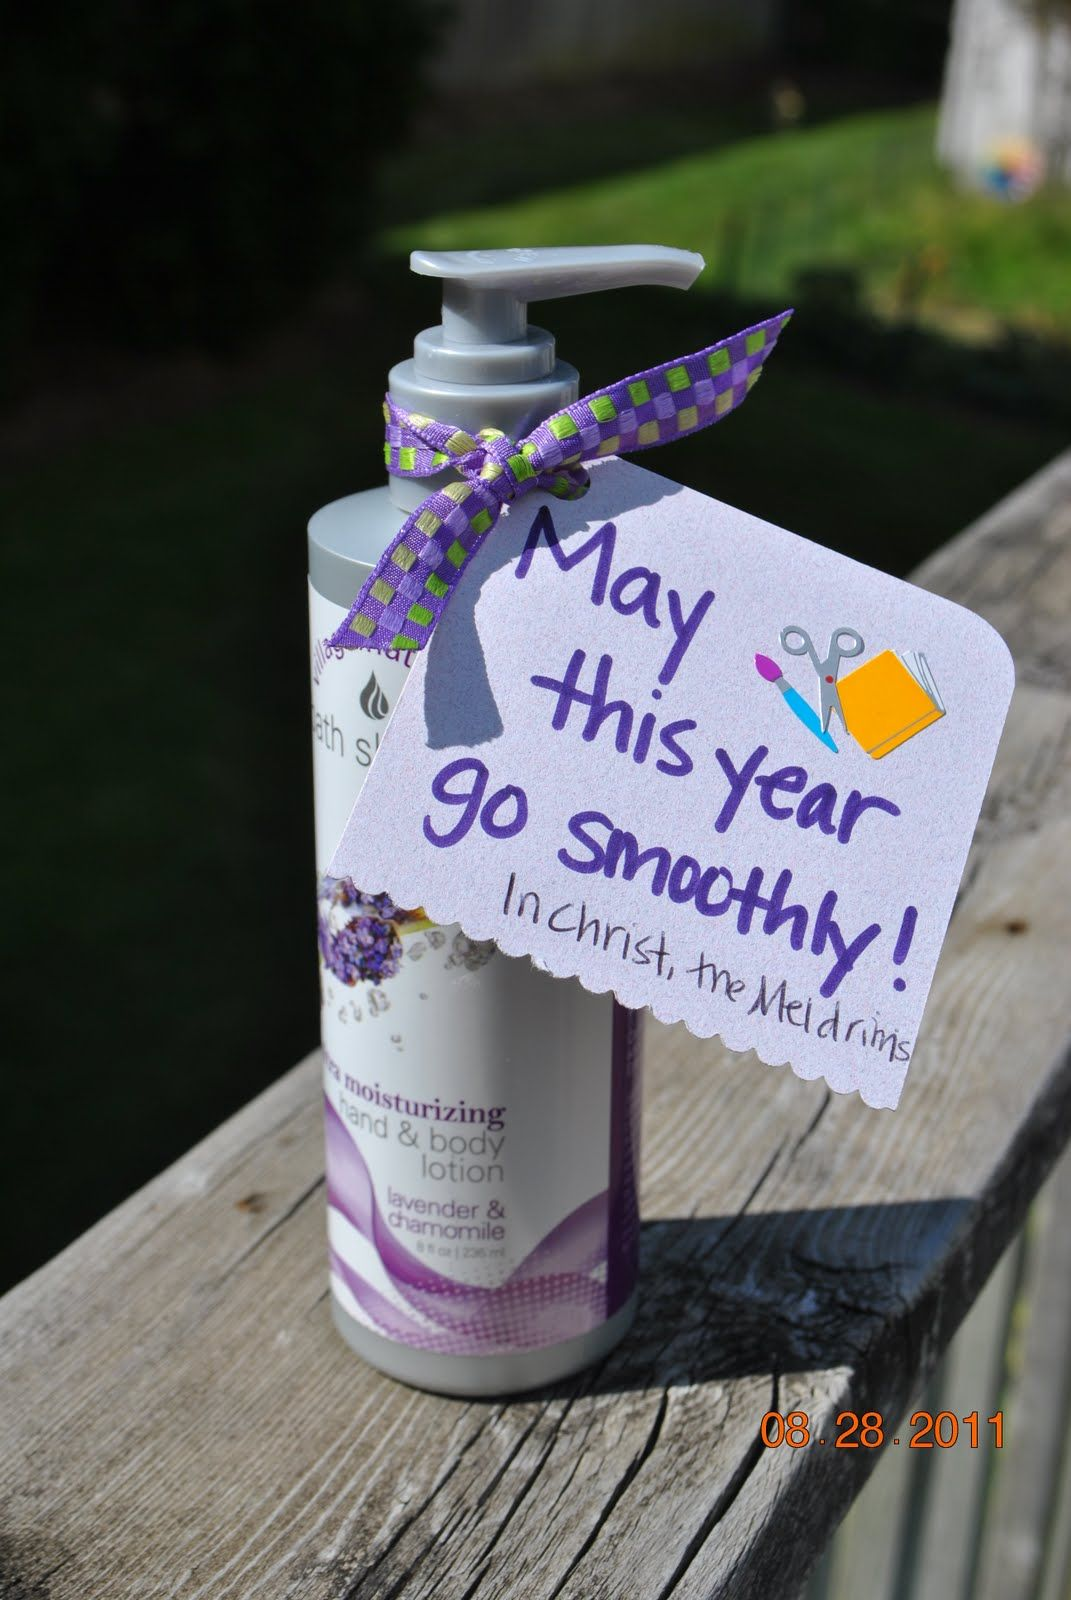 Thand/body lotion teacher gift? new year neighbour gift